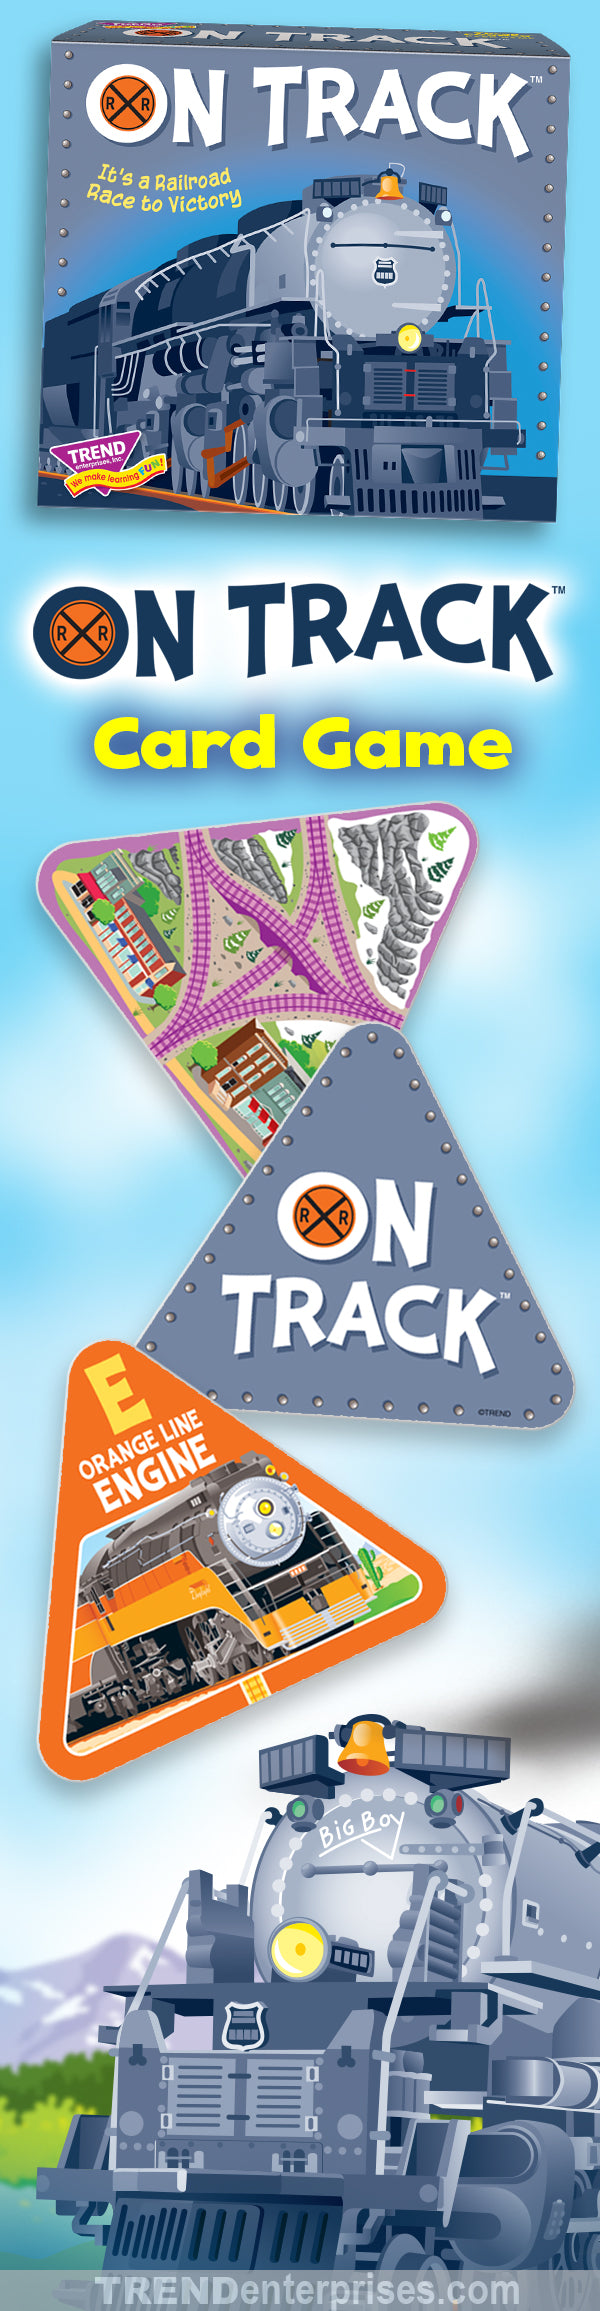 ON TRACK™ railroad train family game! Tip your hat to history and ride the rails to victory with On Track. It'll take concentration, a competitive spirit, and a bit of luck to triumph in this family-favorite game.